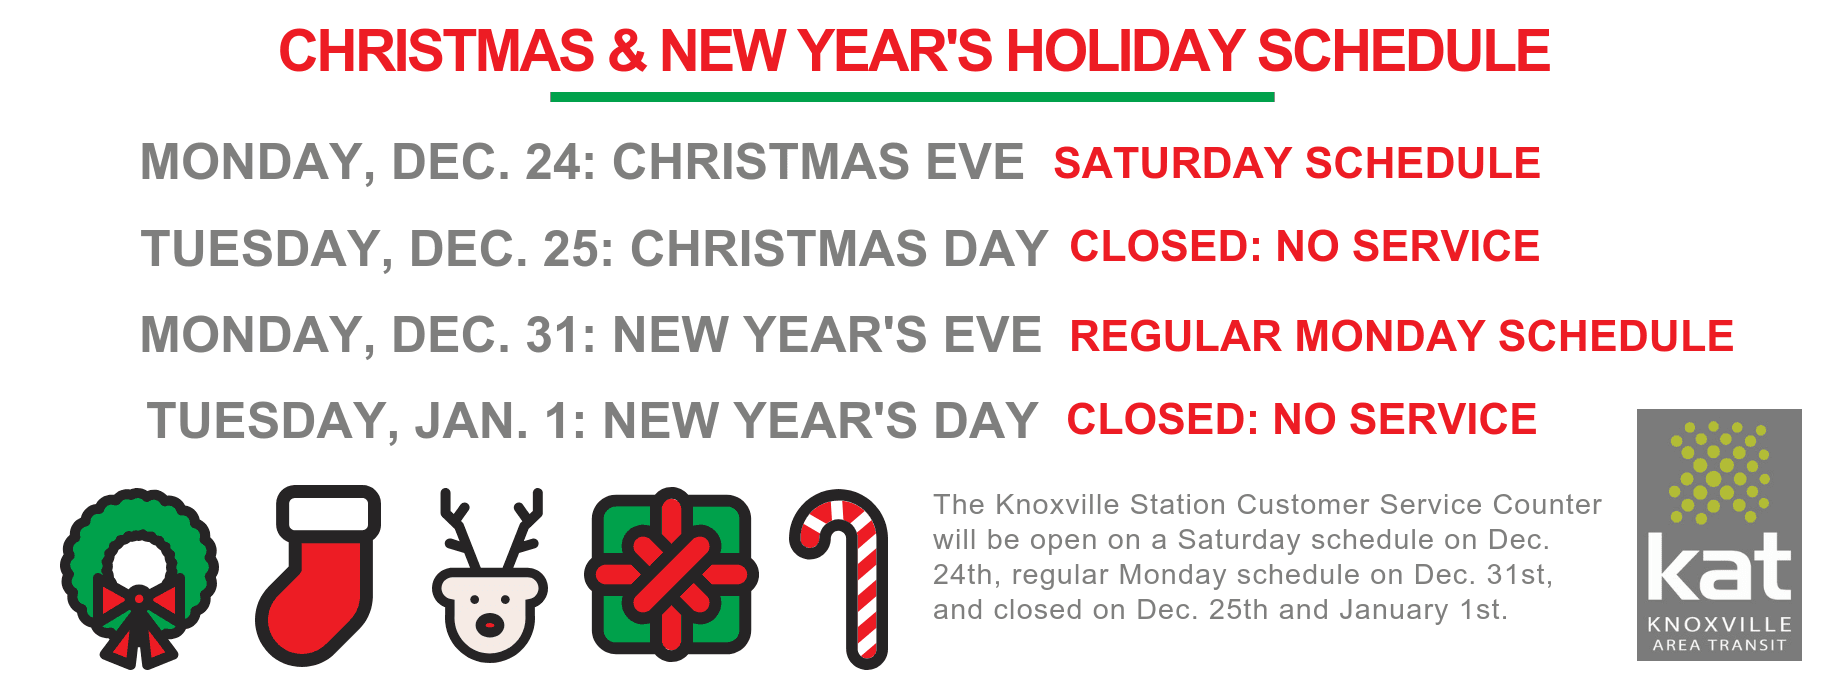 knoxville area transit tn official website